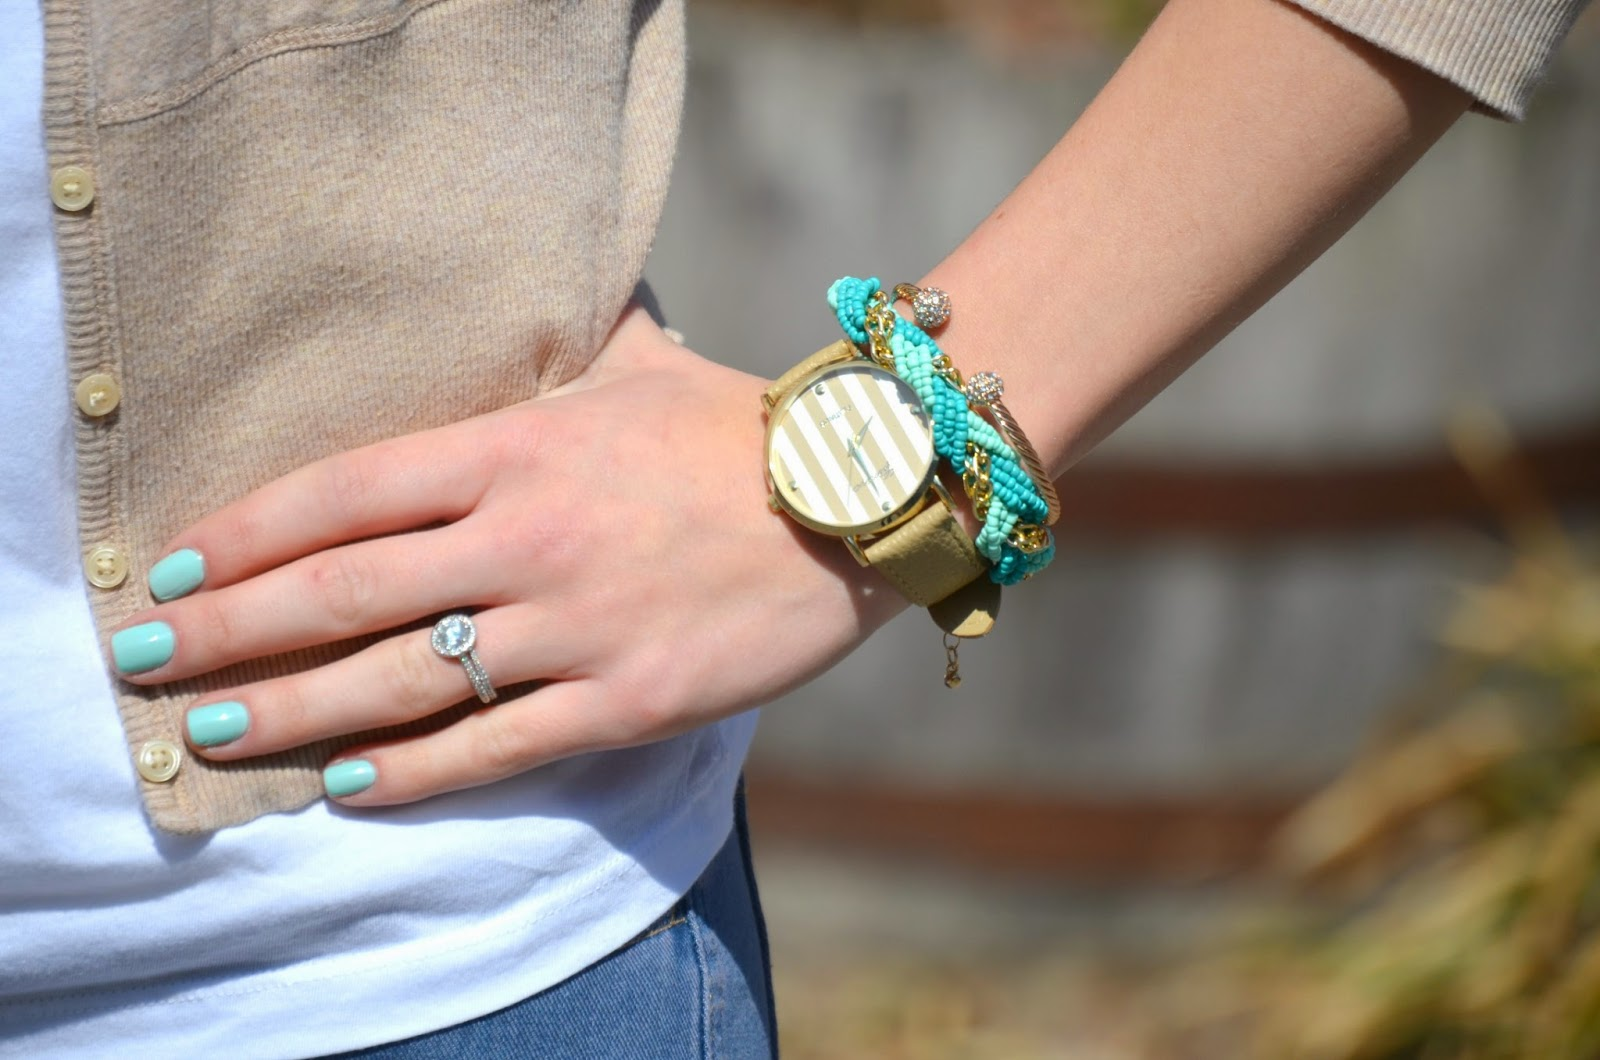 Acessorizing plain white t-shirt with mint acessories